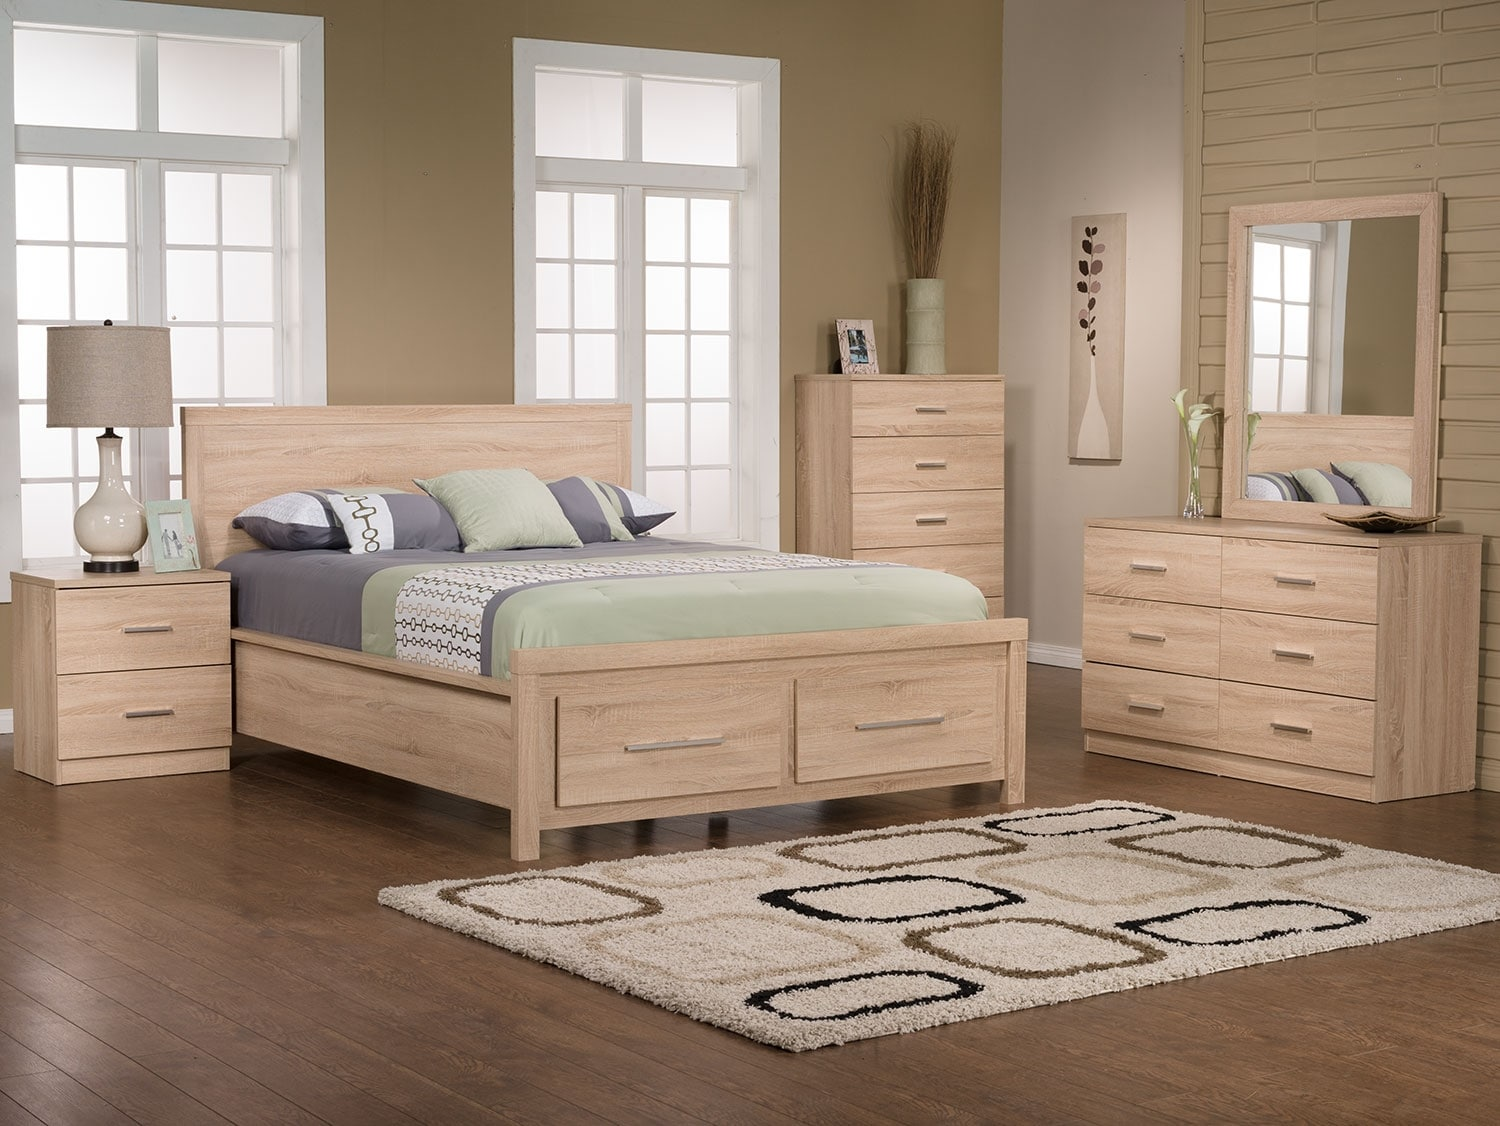 Bedroom Furniture - Sierra Queen 7pc Bedroom